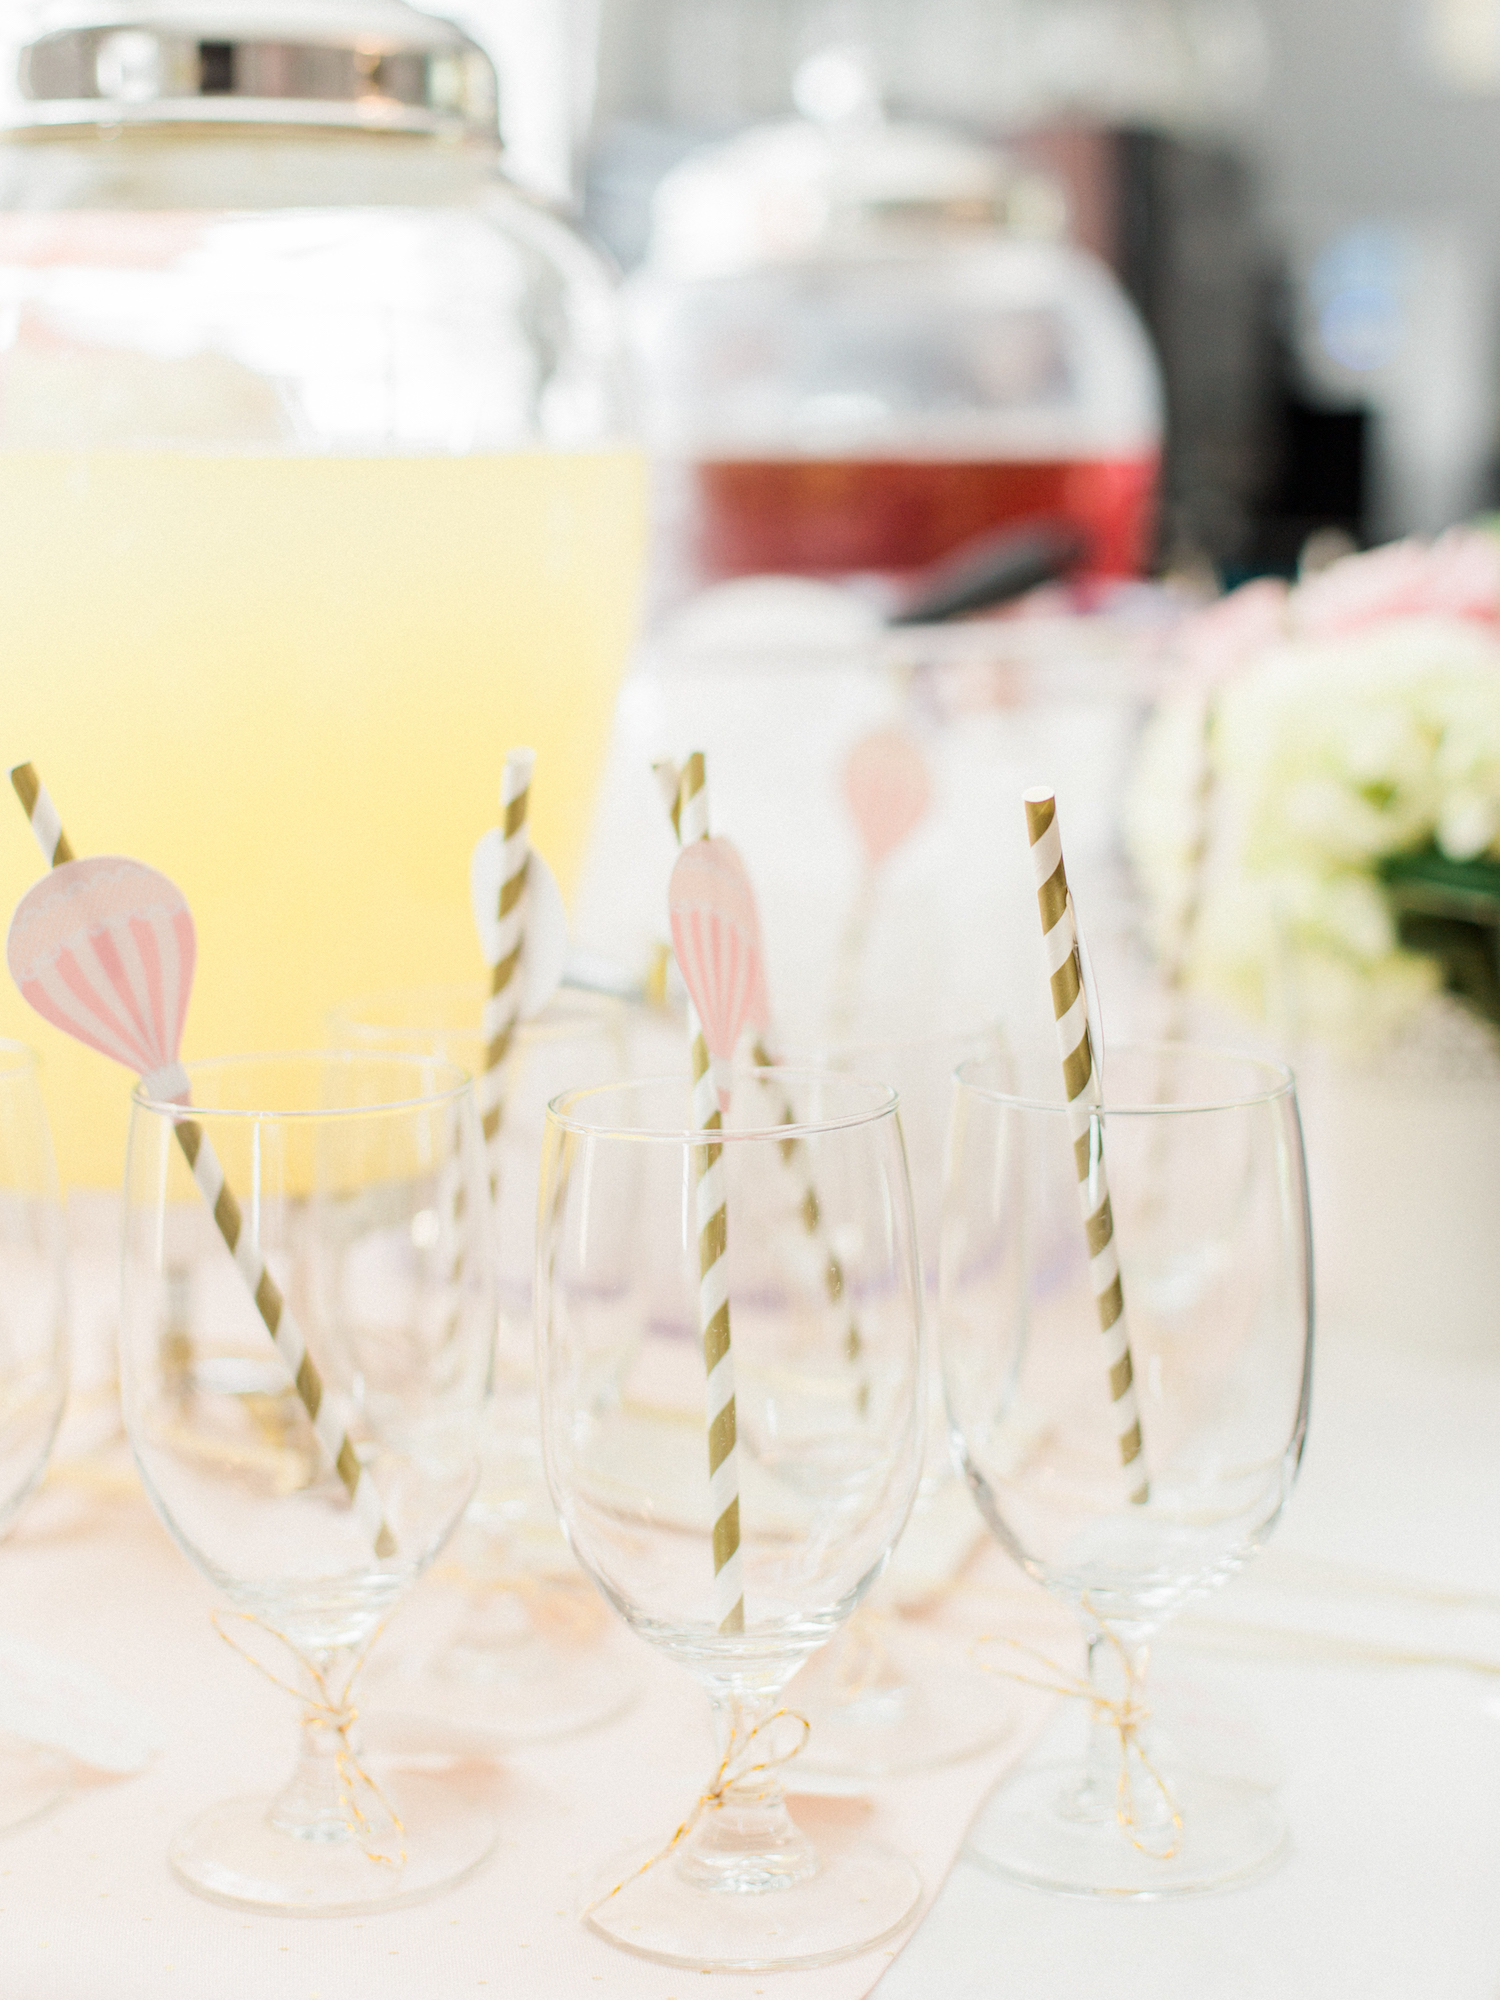 Hot air balloon straws. Drink station at a baby shower.